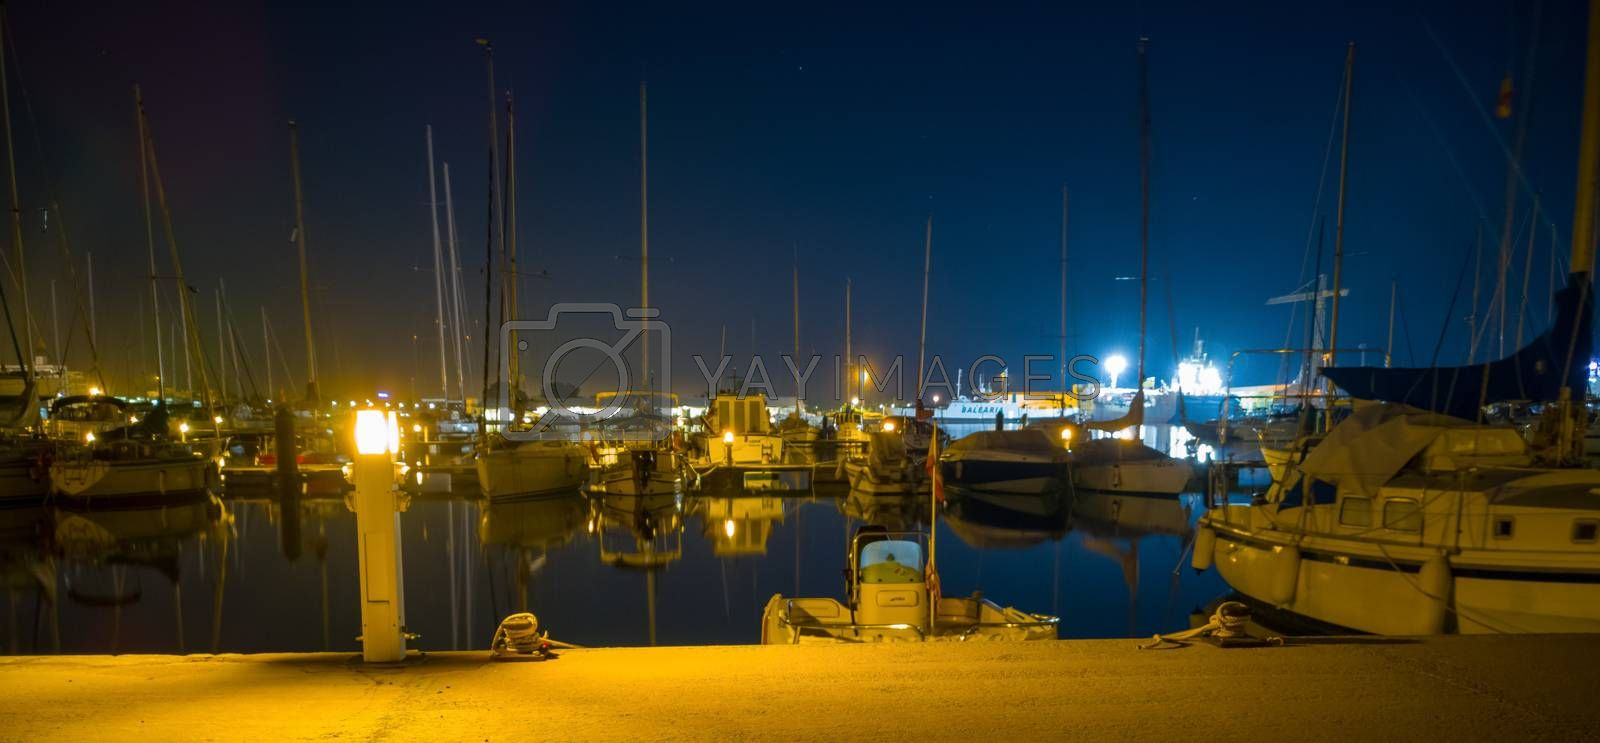 Burriana marina with boats reflected in the sea by Barriolo82